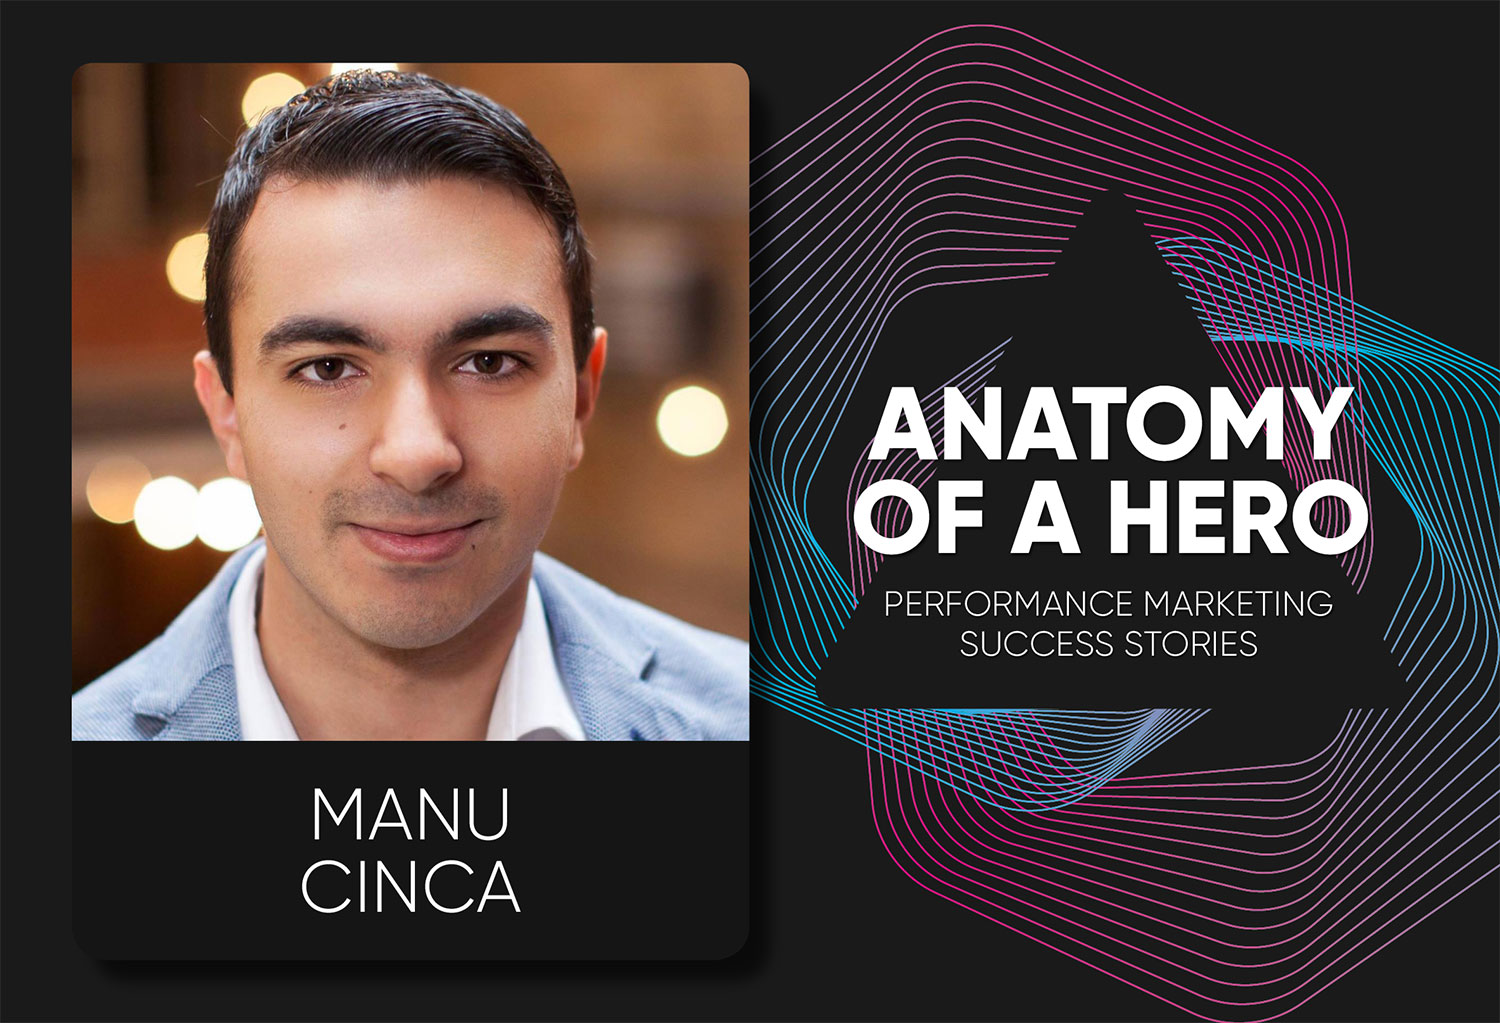 What The Aff Is Up With Manu Cinca?